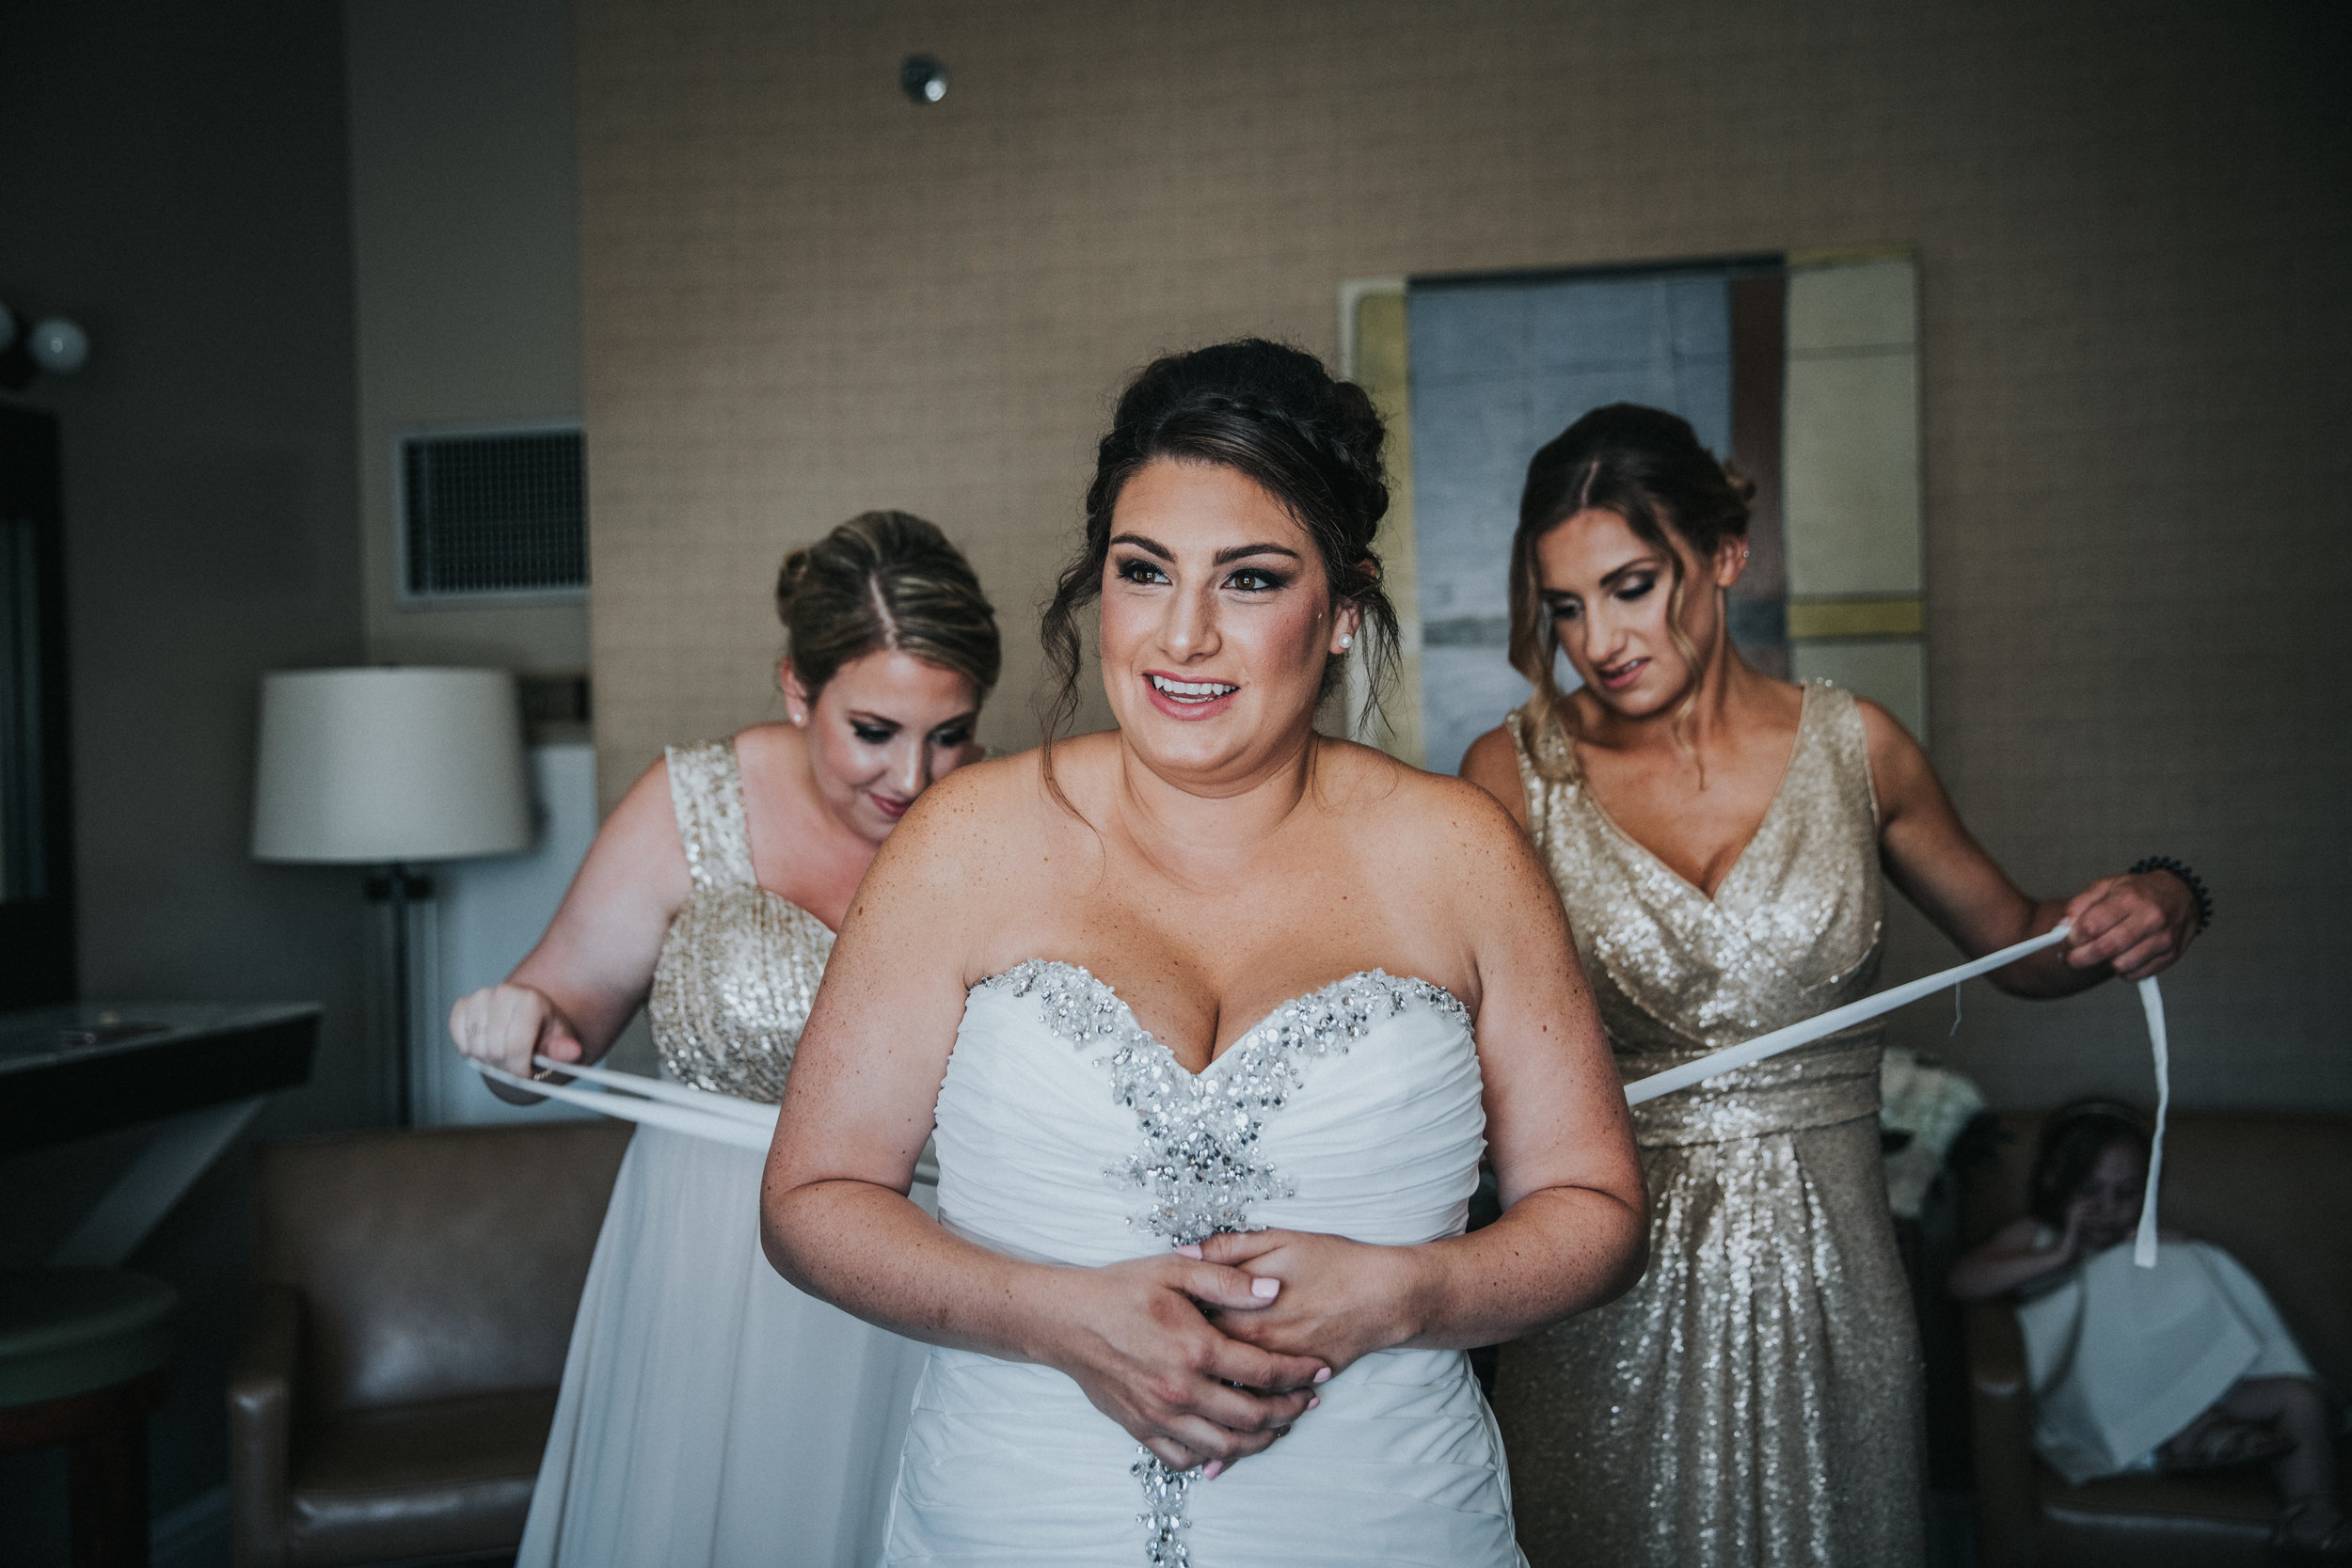 JennaLynnPhotography-NJWeddingPhotographer-Wedding-TheBerkeley-AsburyPark-Allison&Michael-GettingReady-69.jpg